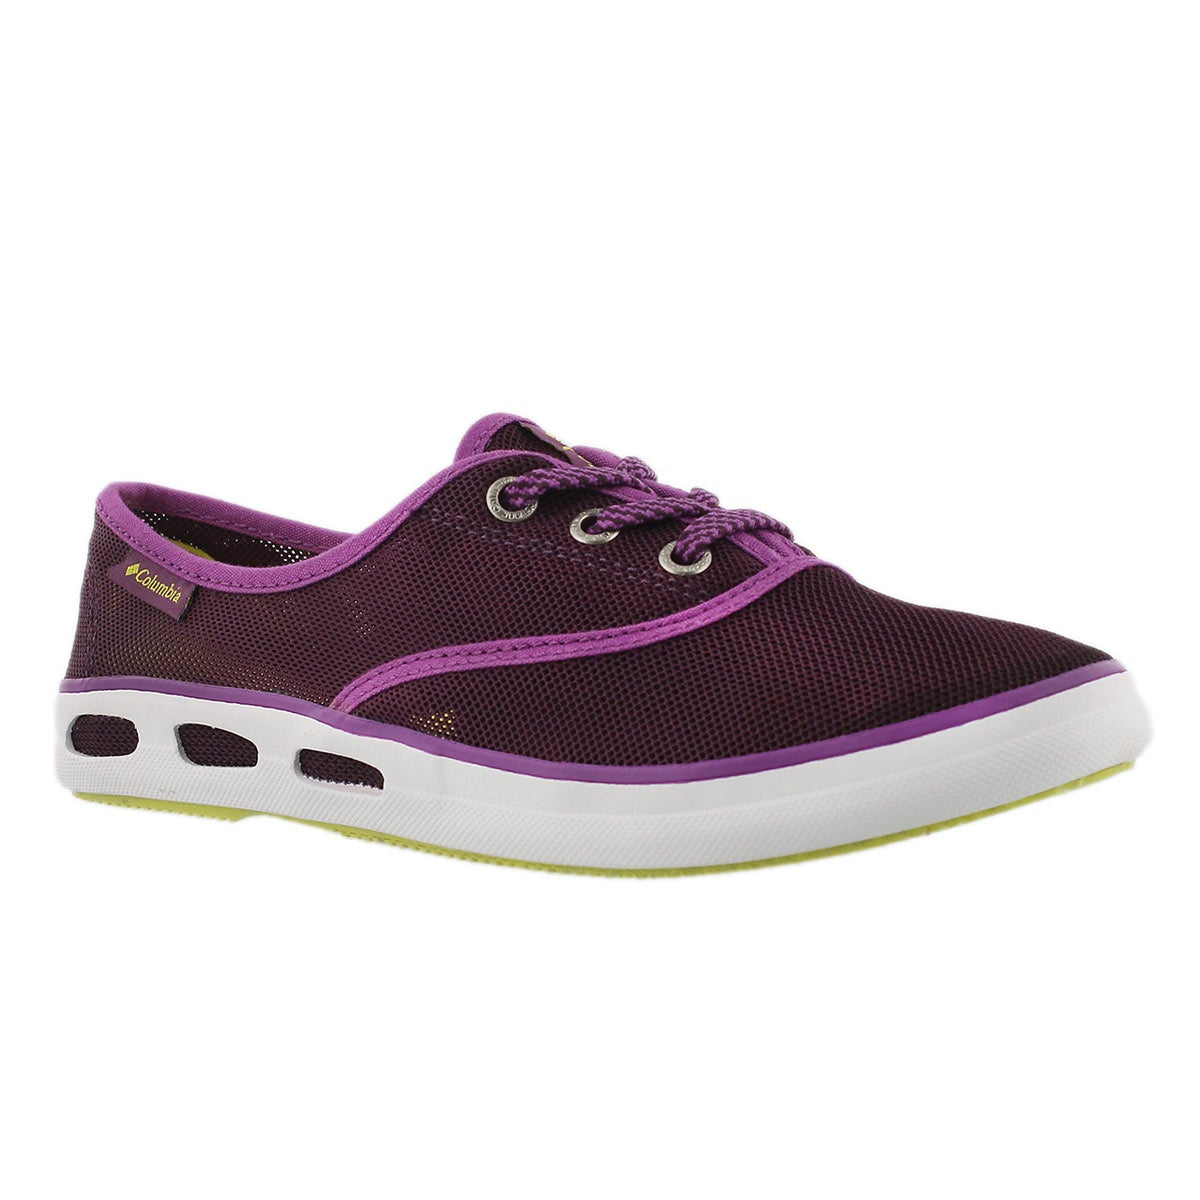 Women's VULC N VENT LACE MESH purple sneakers